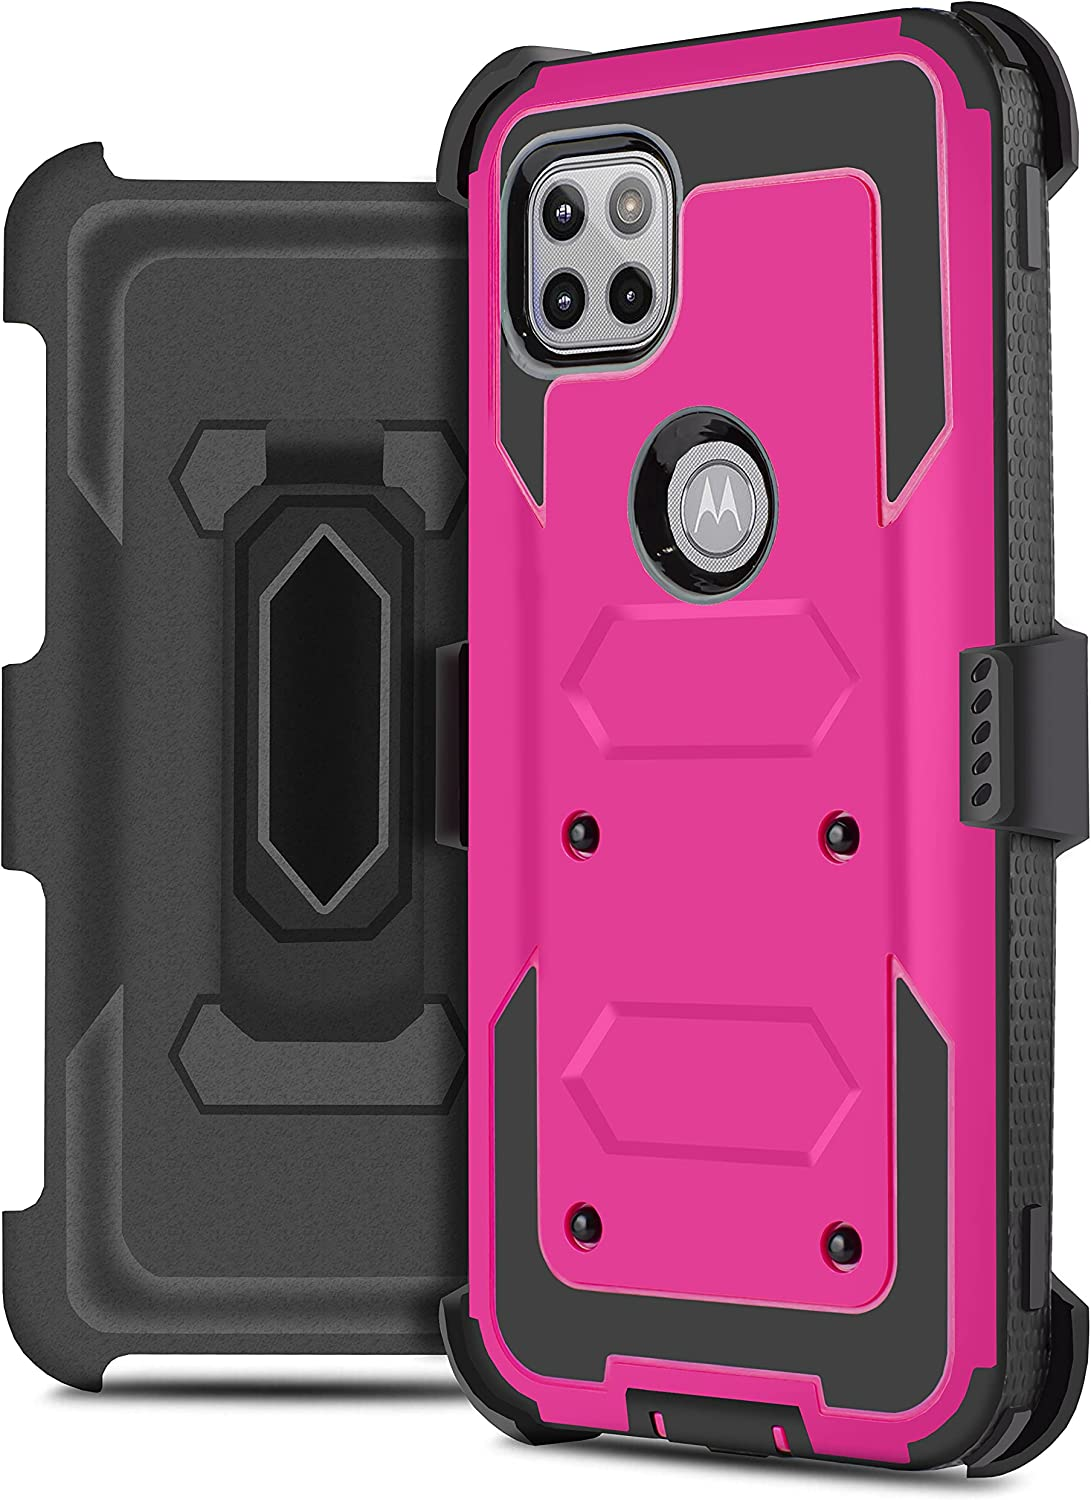 Jackpot Wireless Compatible for Motorola One 5G ACE Moto G 5G Holster with Swivel Belt Clip, Built-in Screen Protector Heavy Duty Full Body Protection Shockproof Kickstand Cover (Pink)